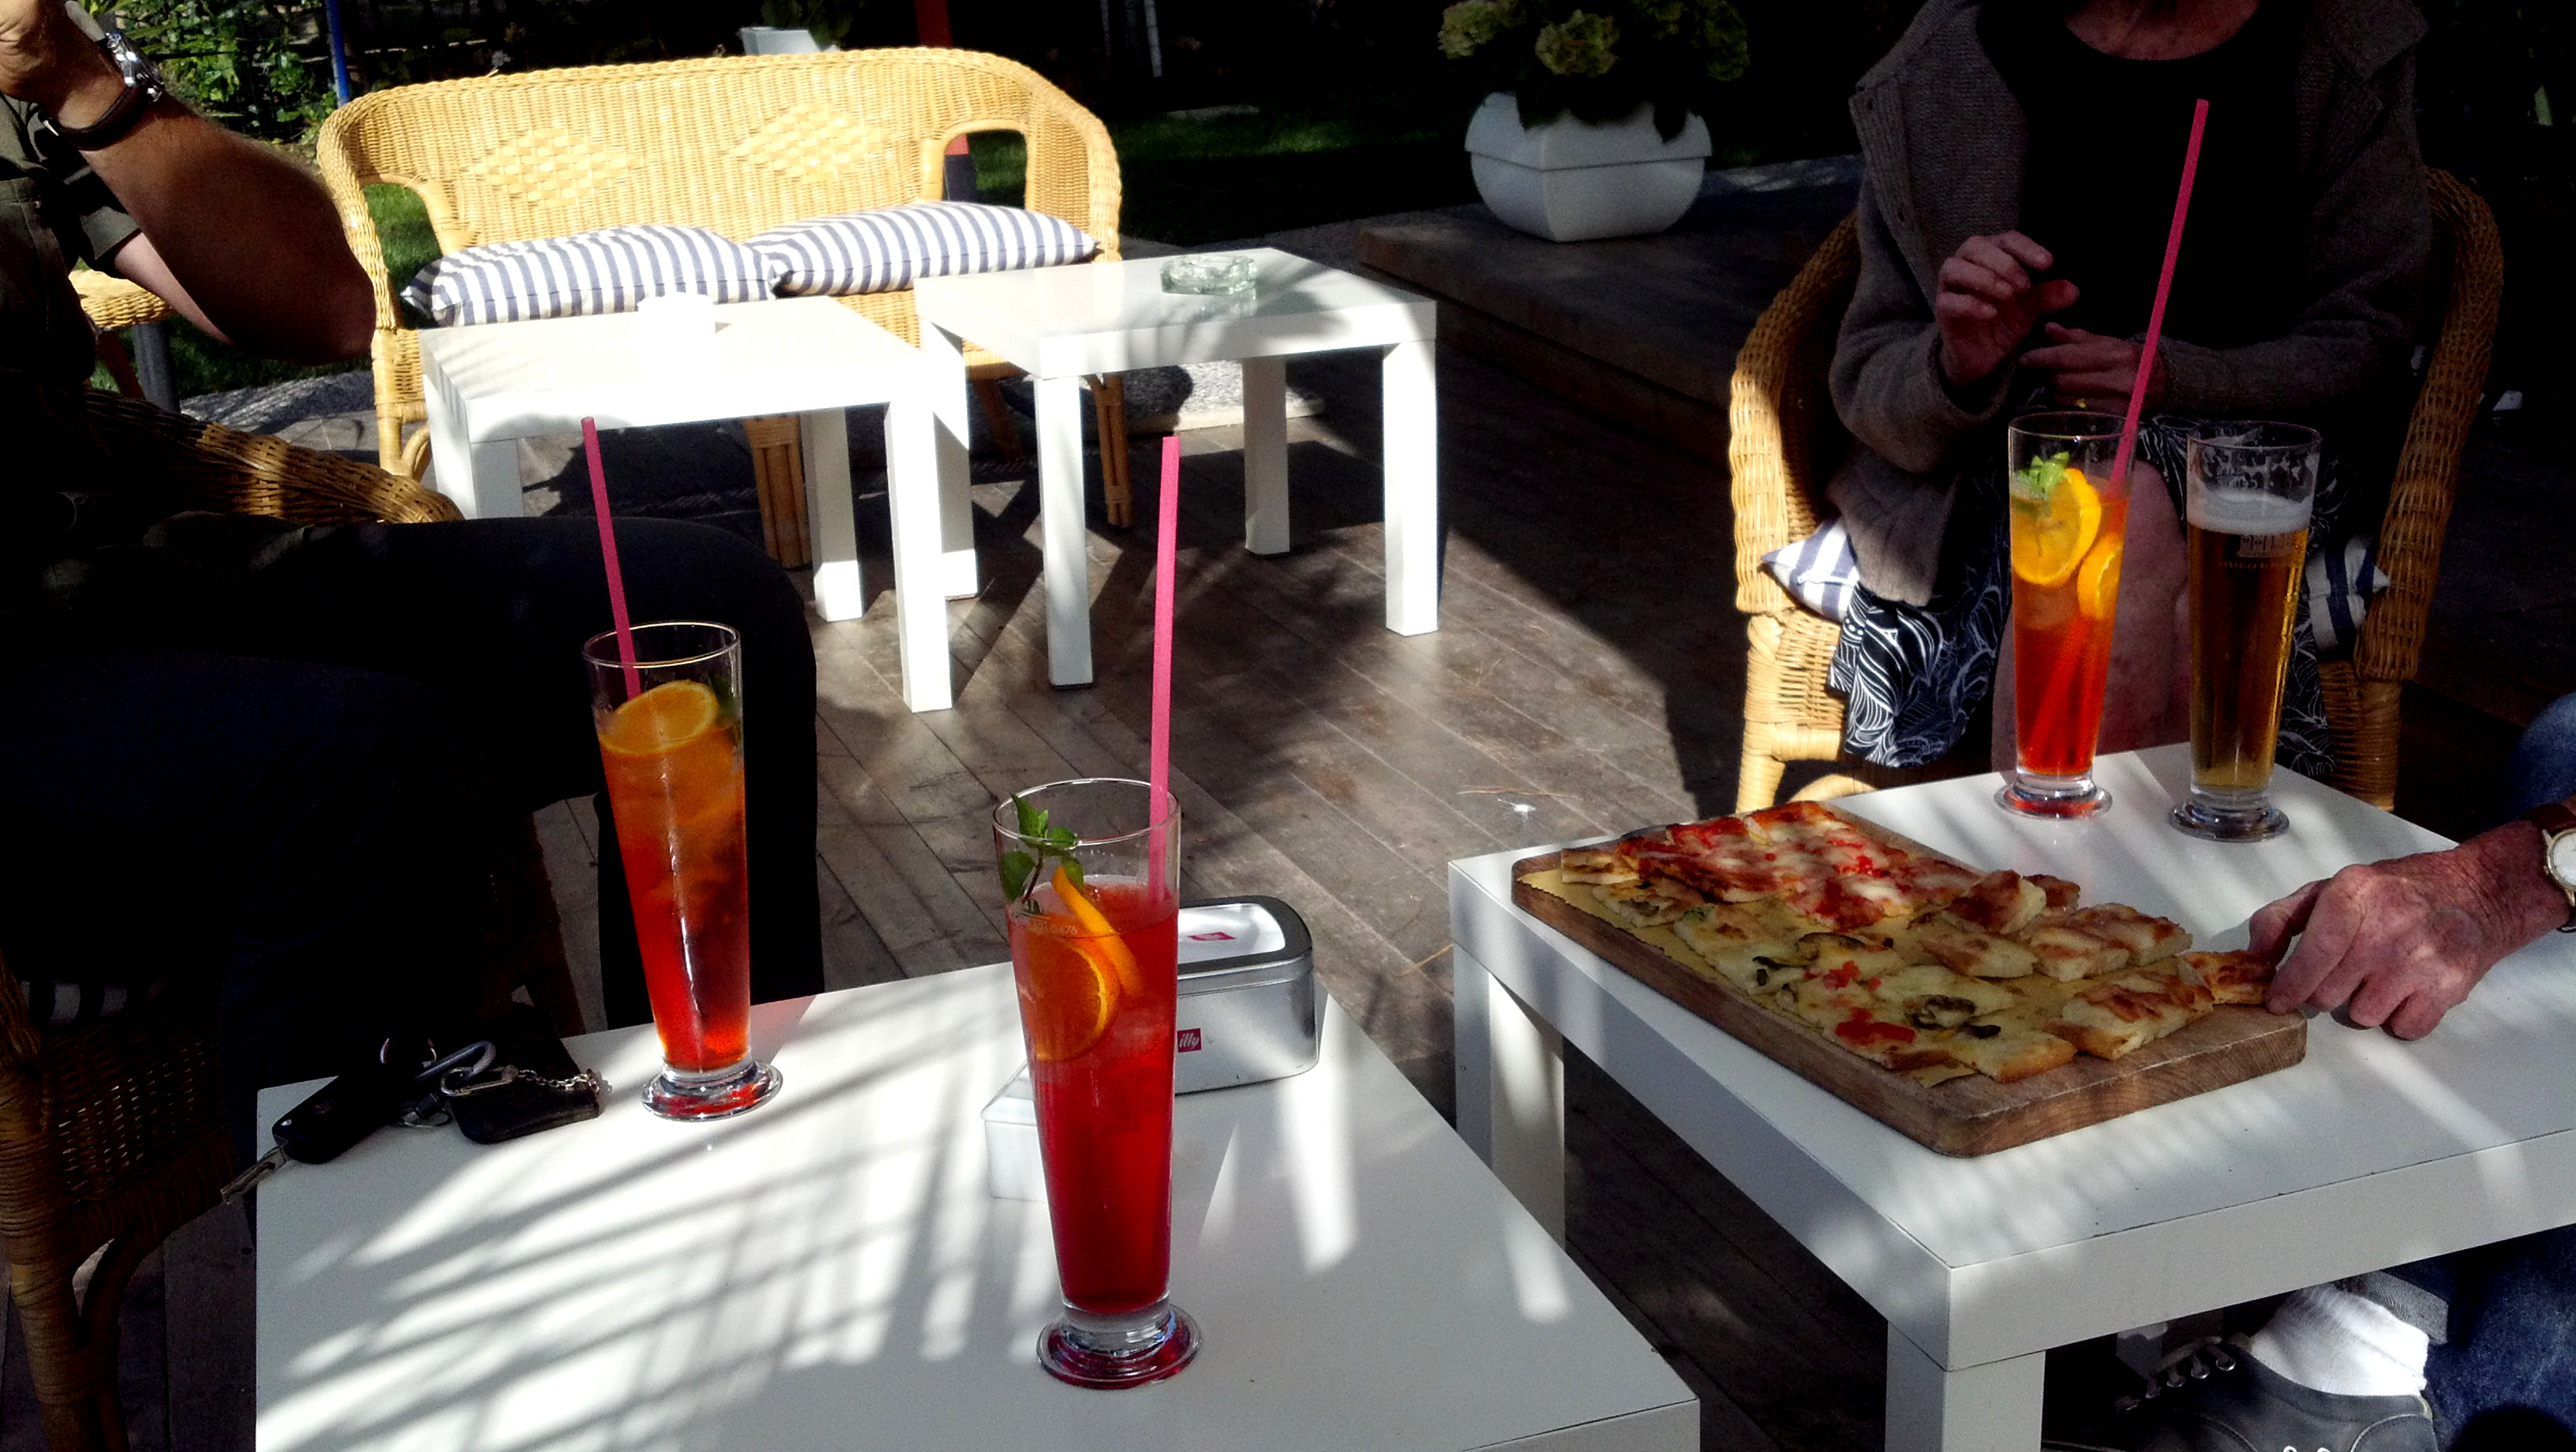 visit to Italy certainly will entail an introduction to aperitivi ...